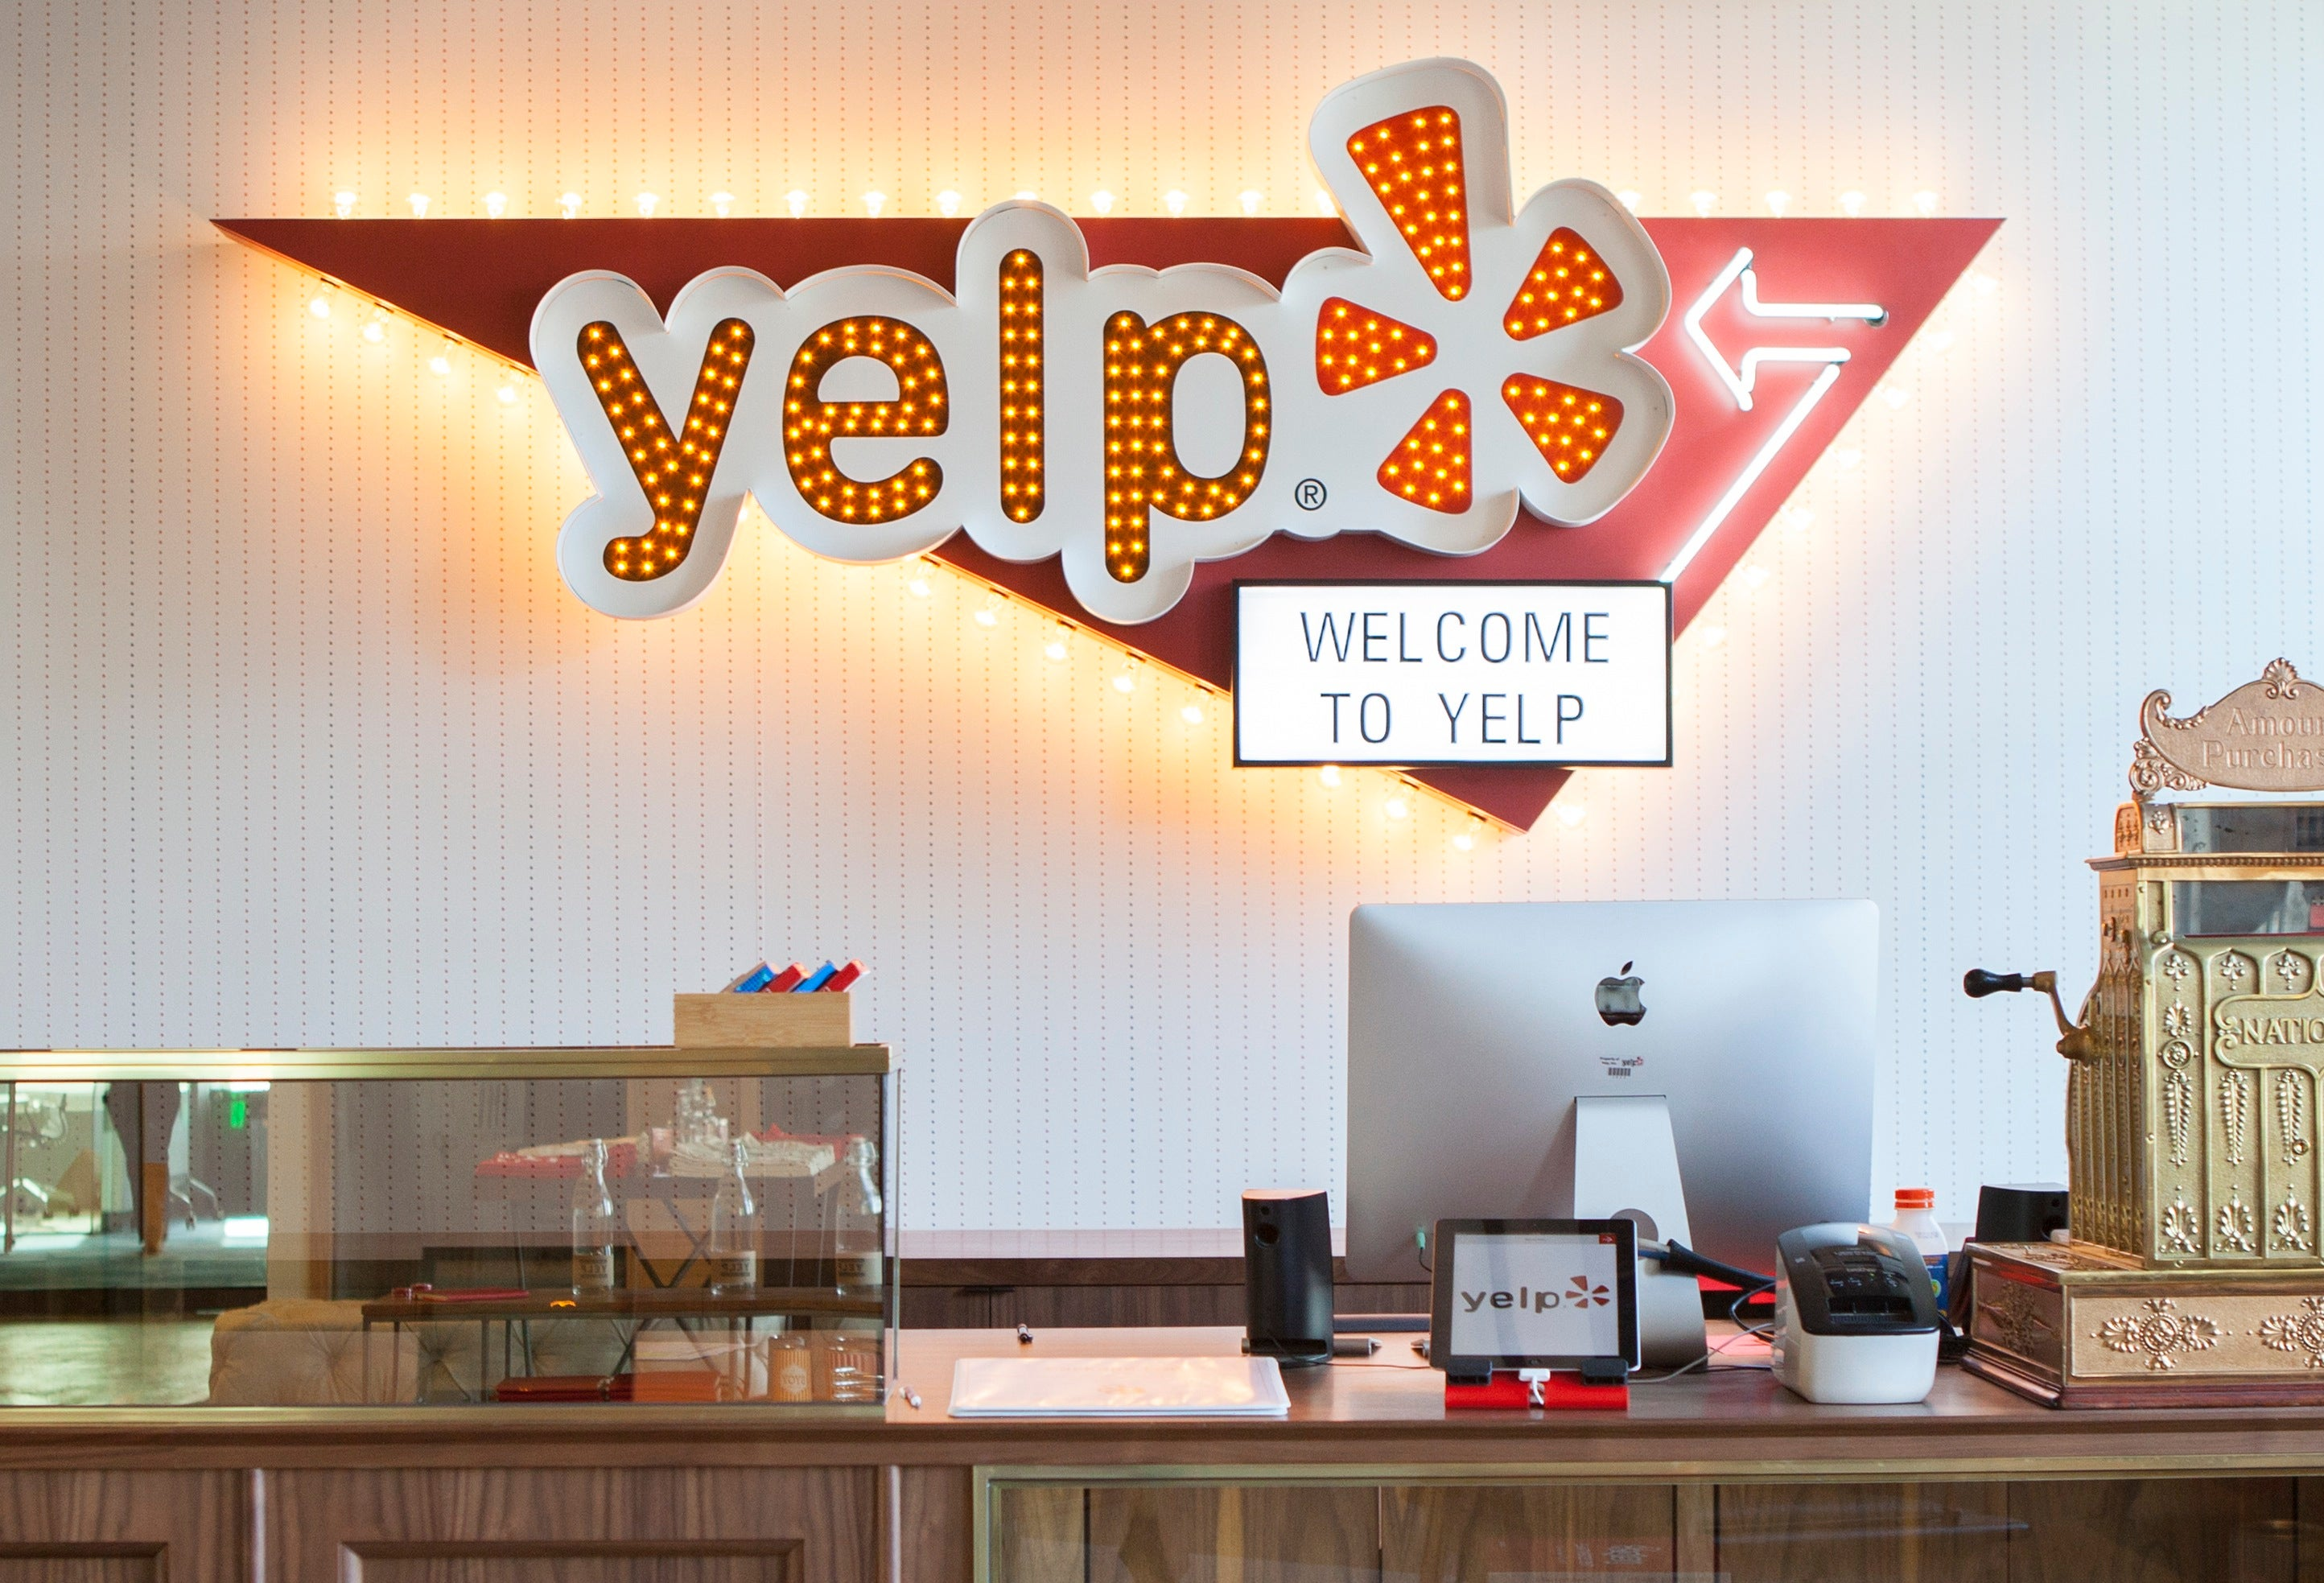 Groupon Buying Yelp Makes Too Much Sense To Happen The